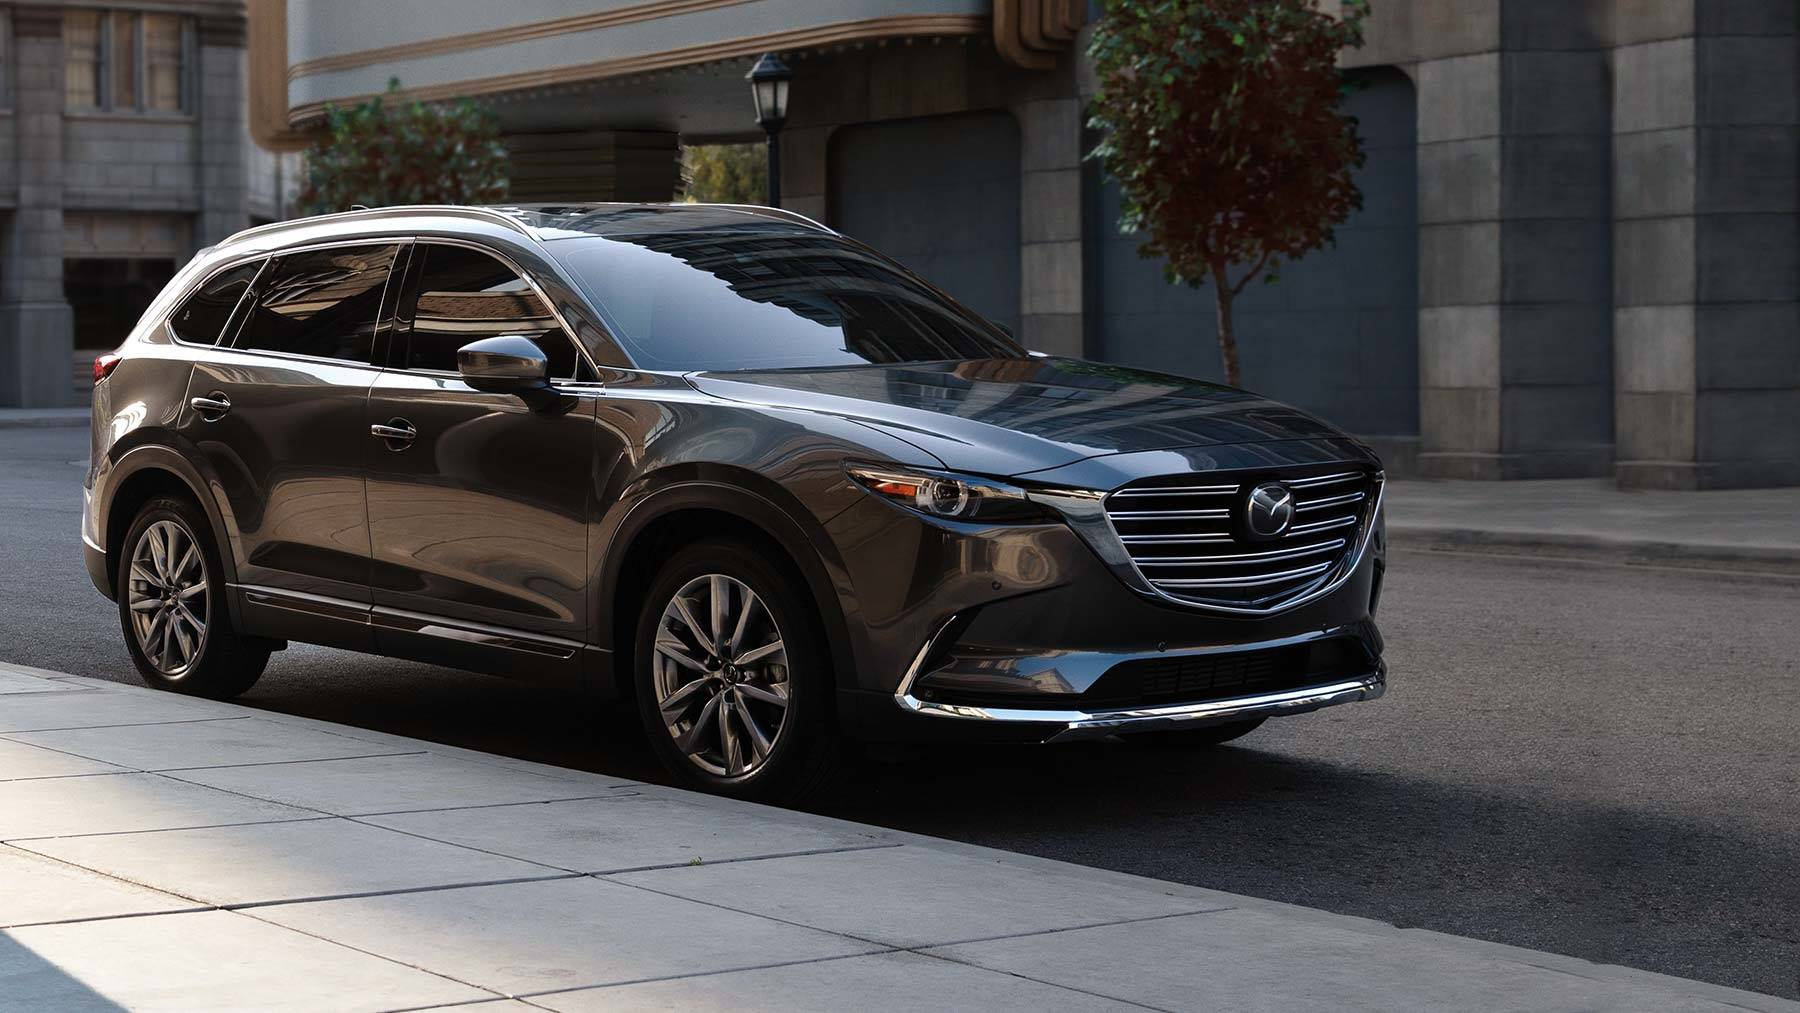 2019 Mazda Cx 9 3 Row Suv Back